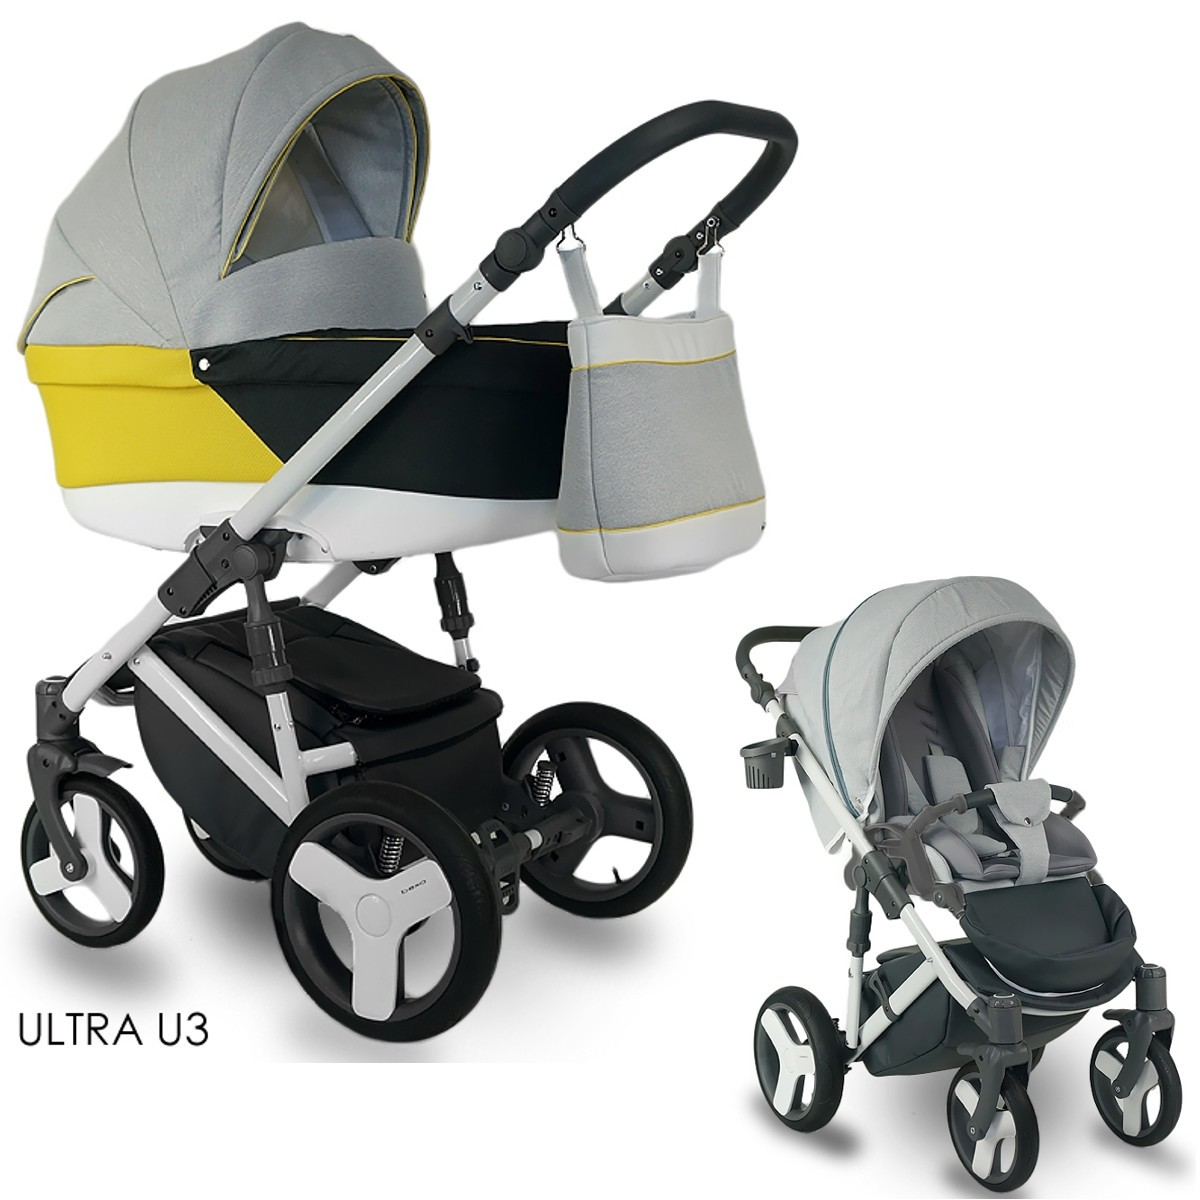 bexa ultra kombi kinderwagen 2in1 mit babywanne sportwagenaufsatz buggy oder 3in1. Black Bedroom Furniture Sets. Home Design Ideas